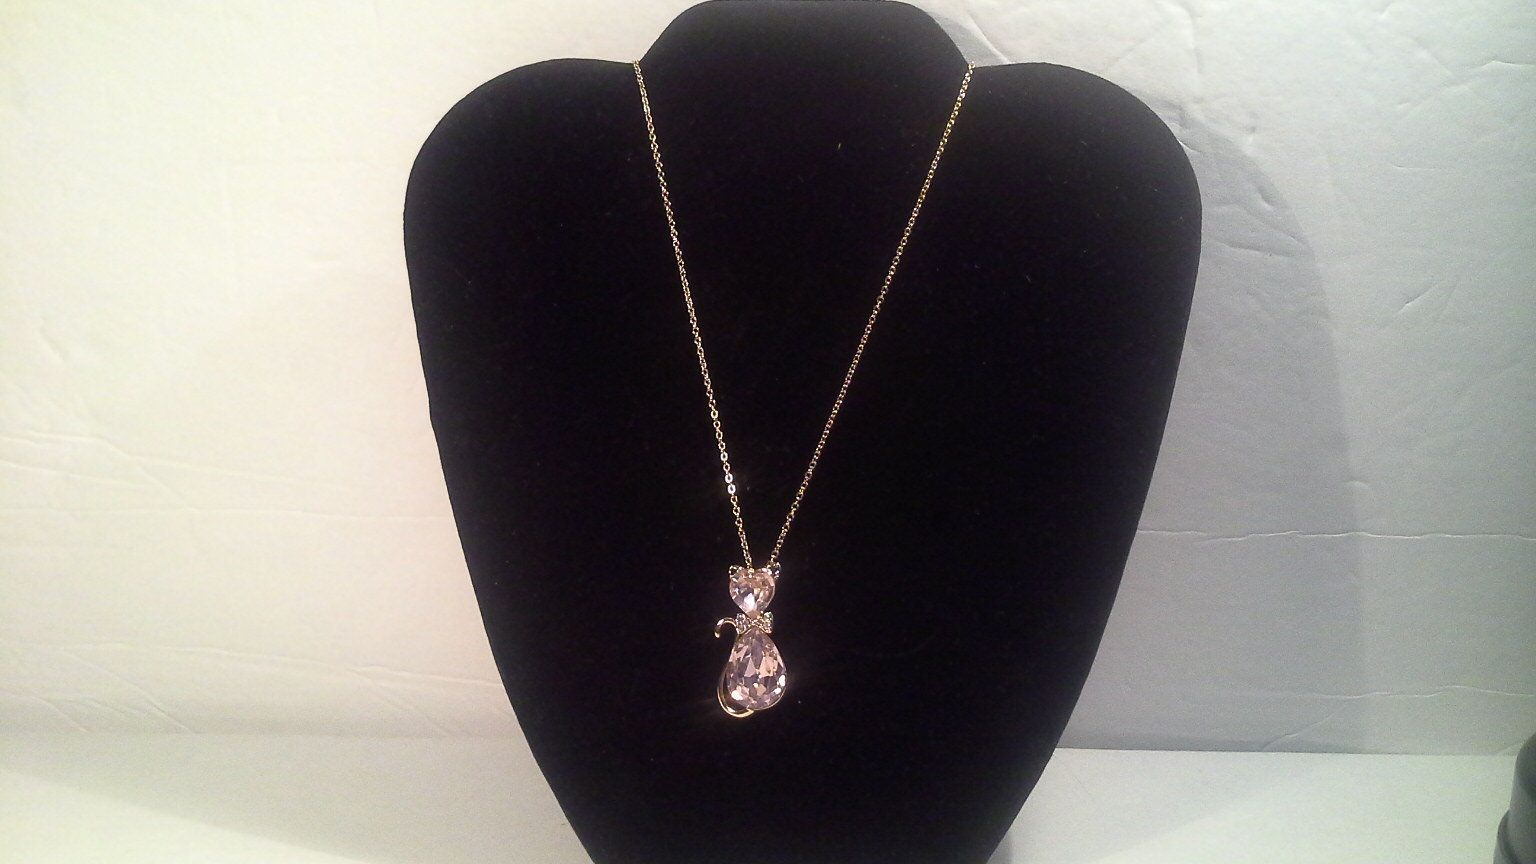 Pink Cat Pendant Necklace with Pear and Heart Shaped Stones 18k Gold Plated Rhinestone Bow Tie and Gold Tone Chain Faceted Pink Stones